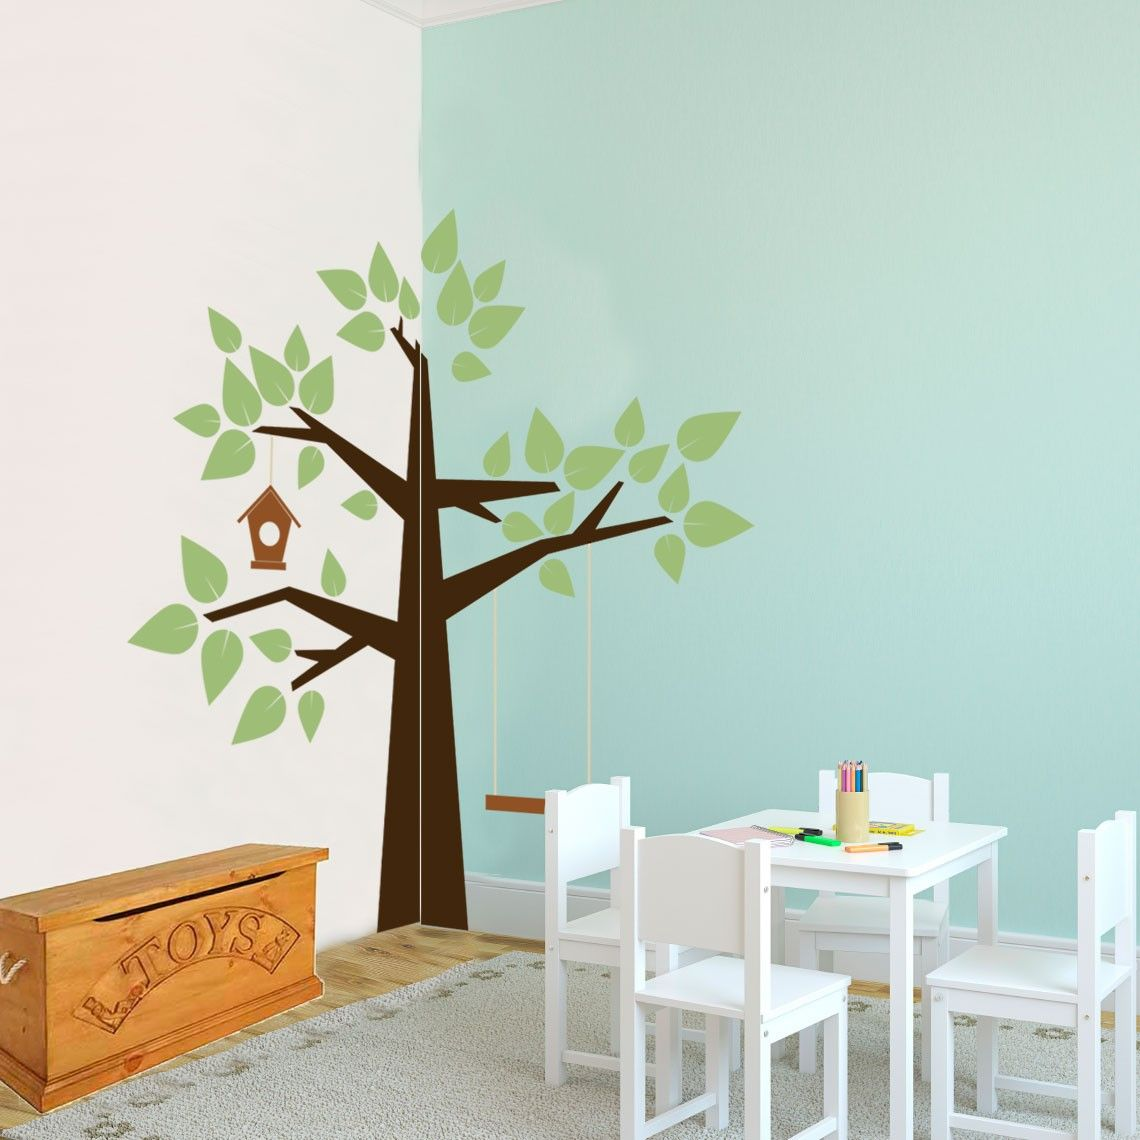 Whimsical corner tree nature vinyl wall art decal for for Accent tree for corner of house